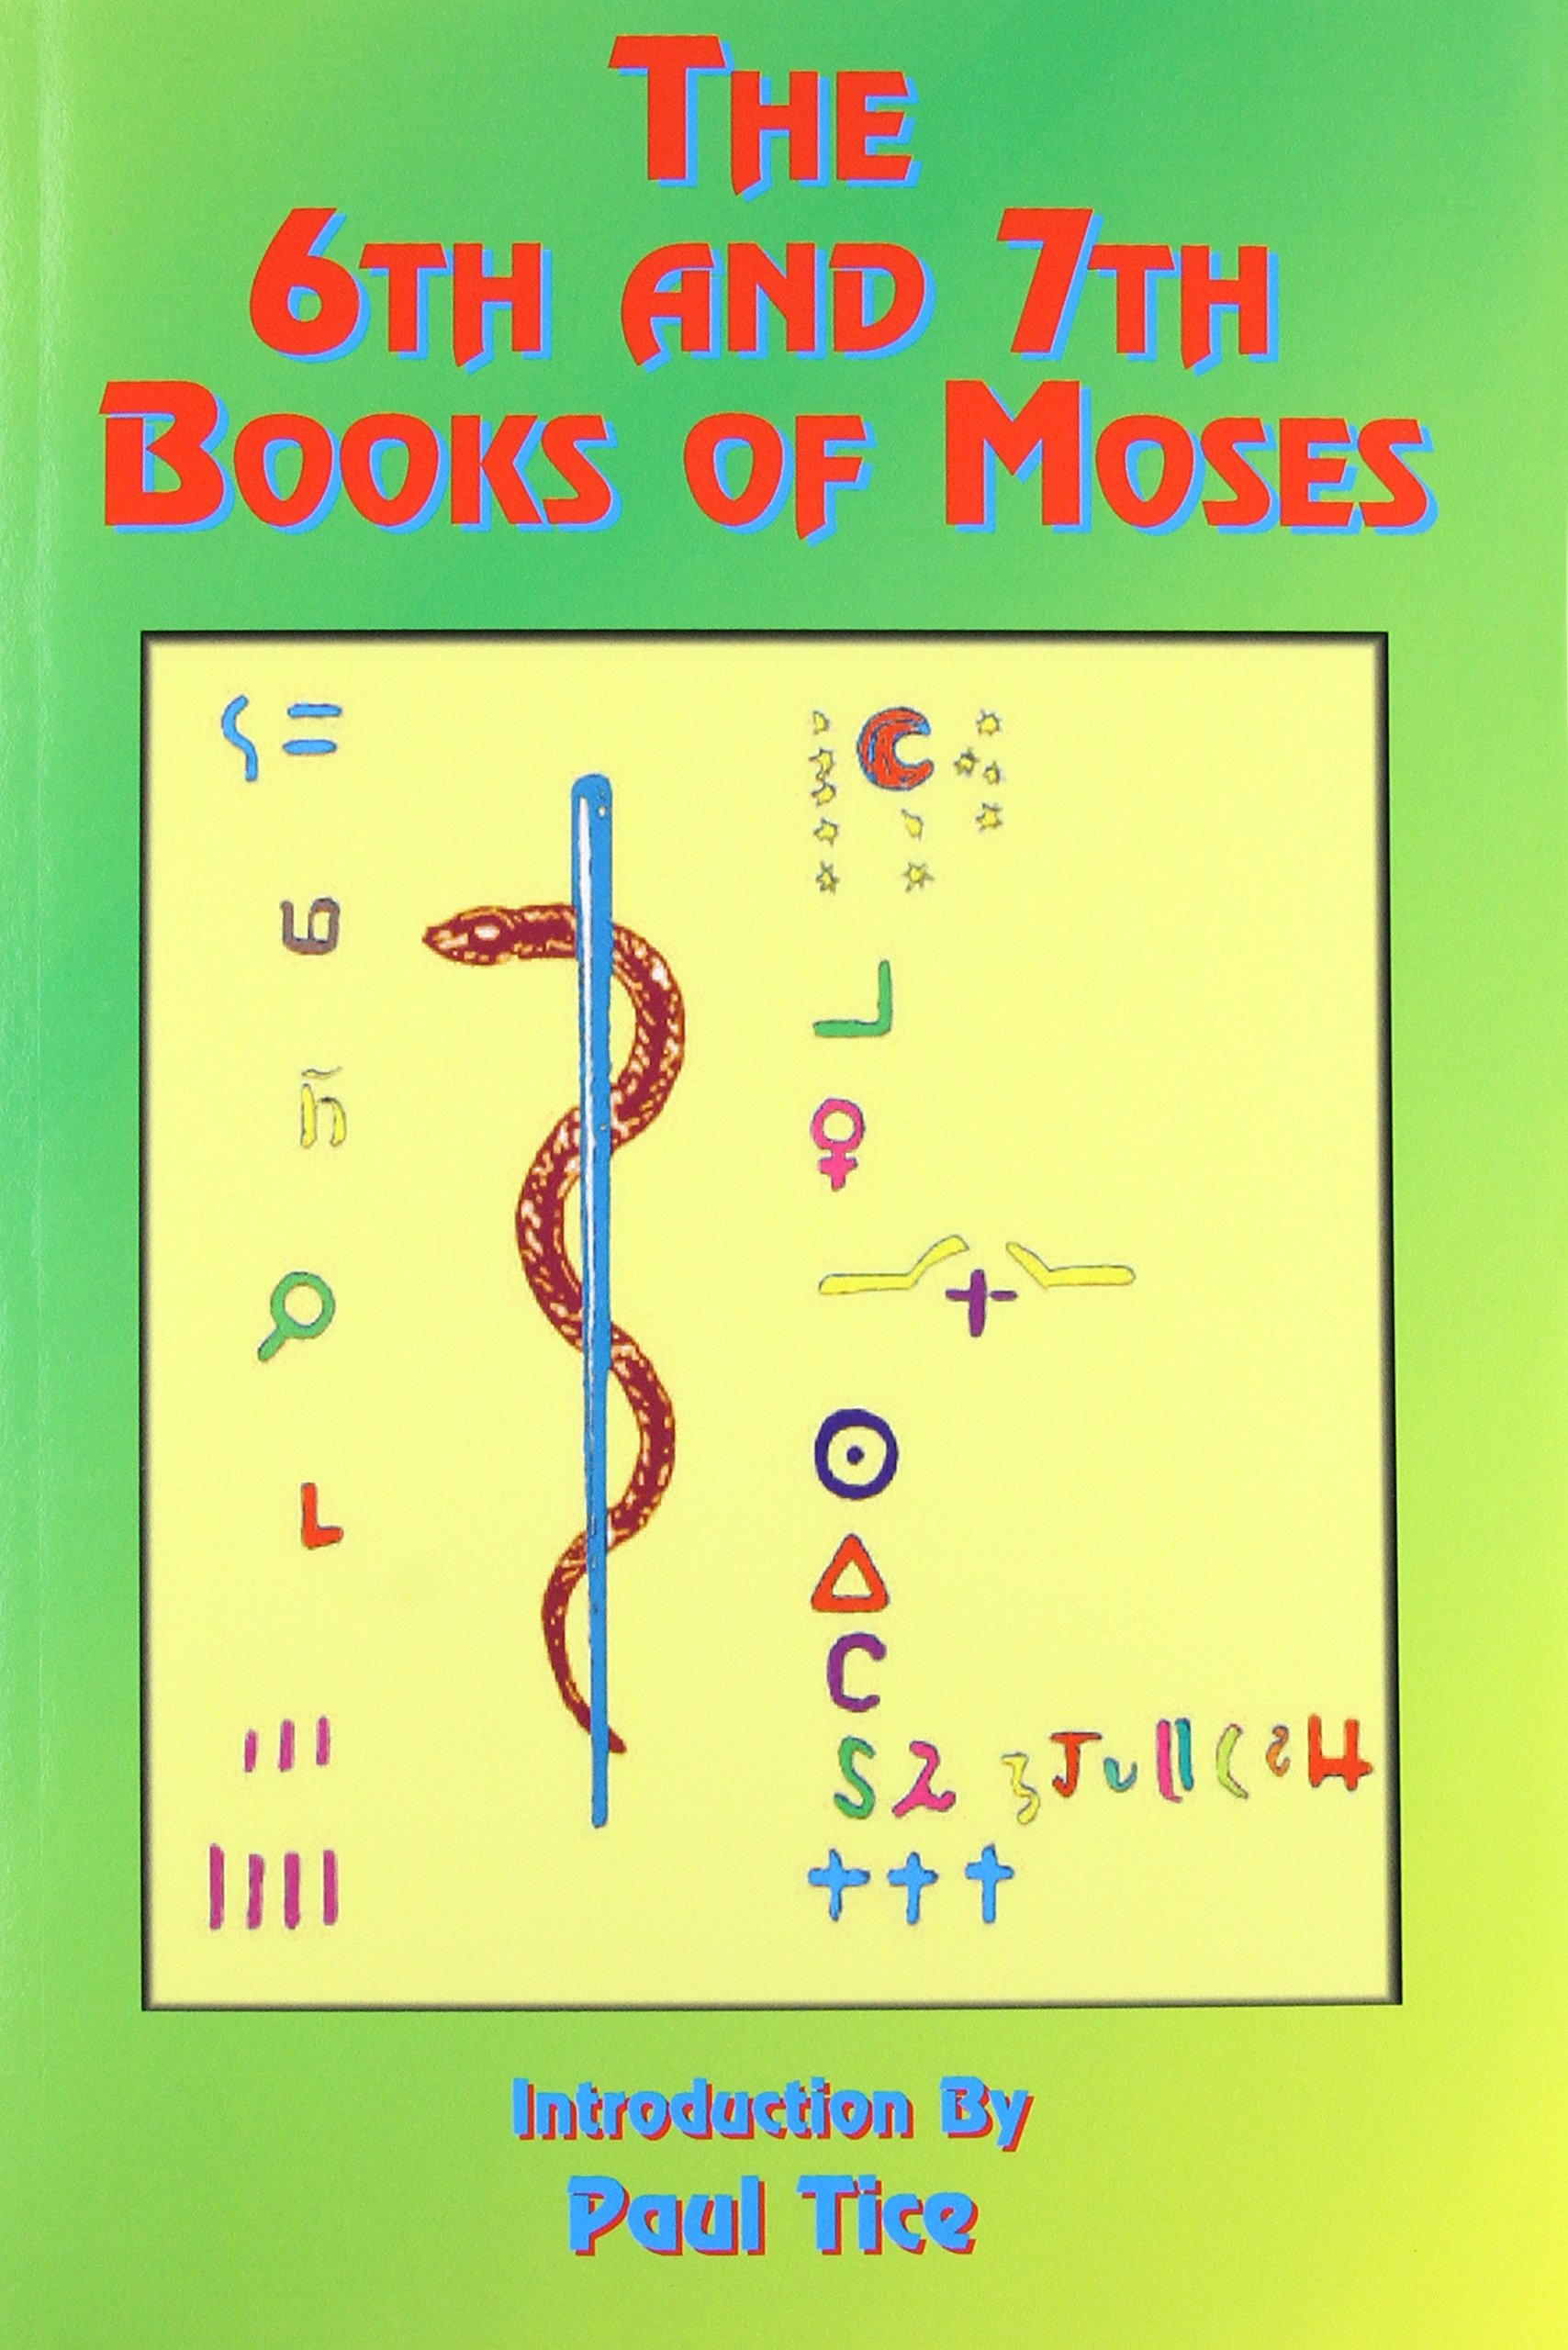 The 6th and 7th Books of Moses (Bk  6, Bk  7): Paul Tice